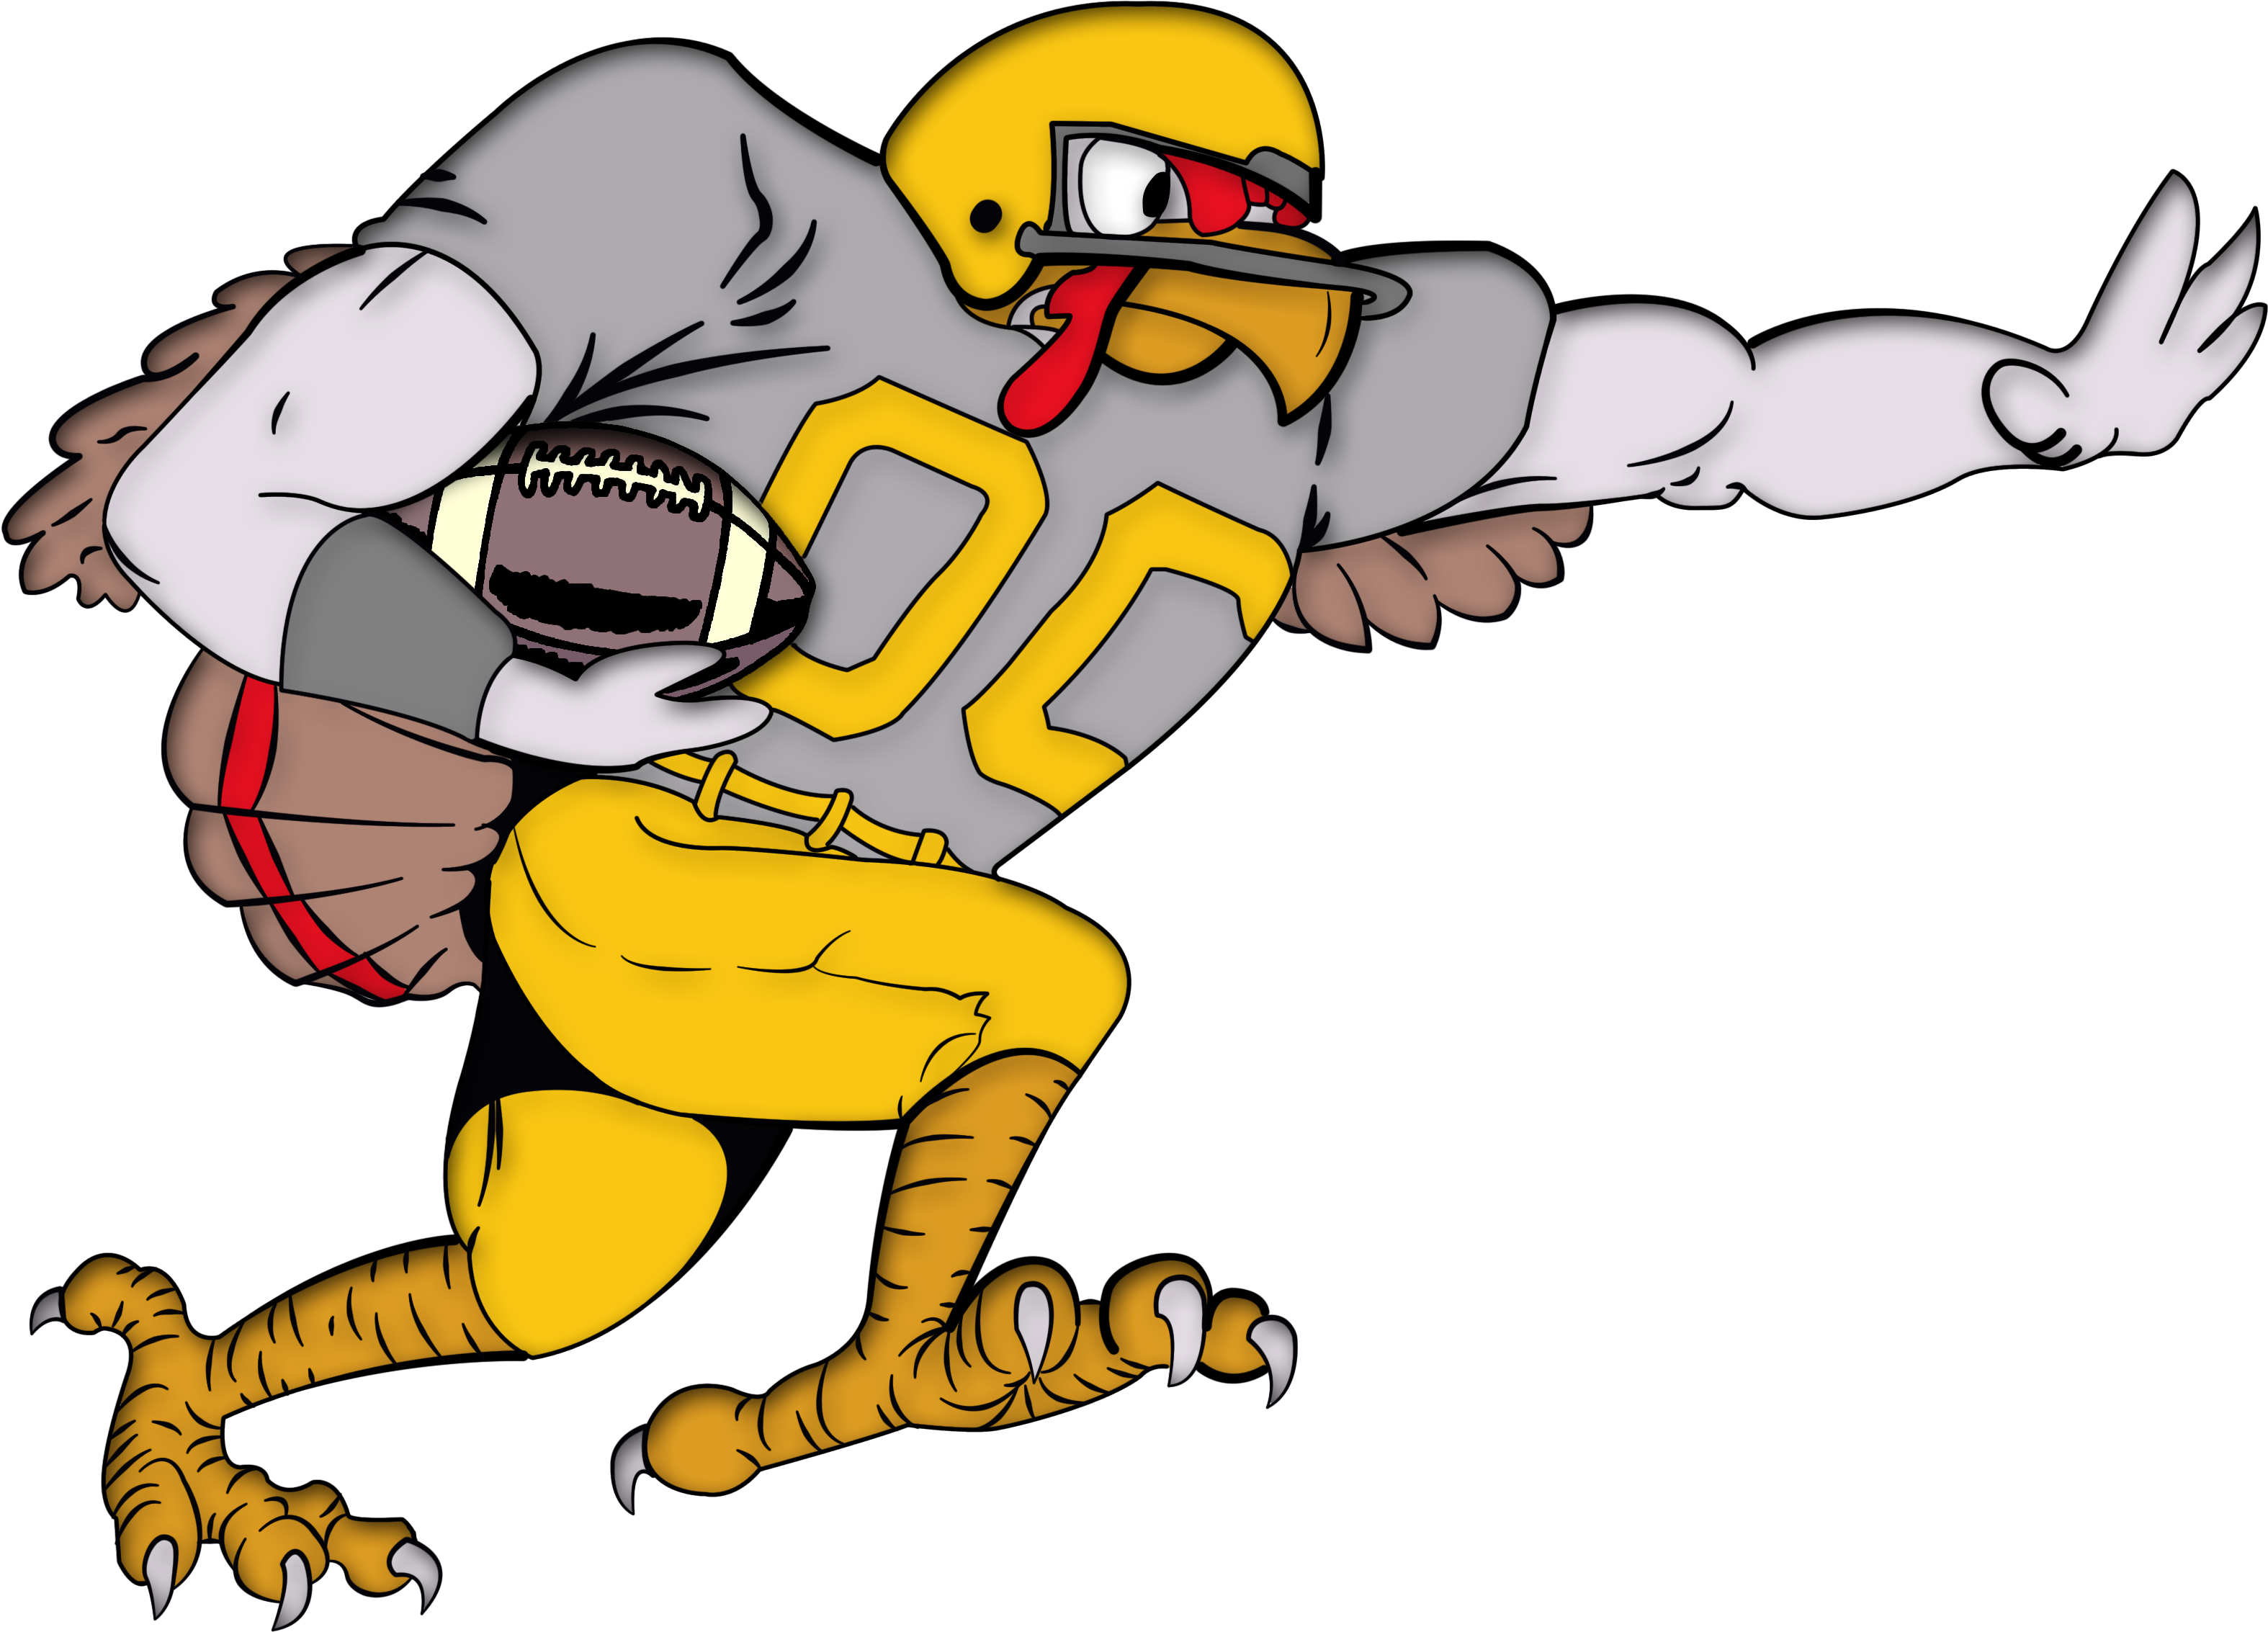 Turkey football png. Download bowl chili cook